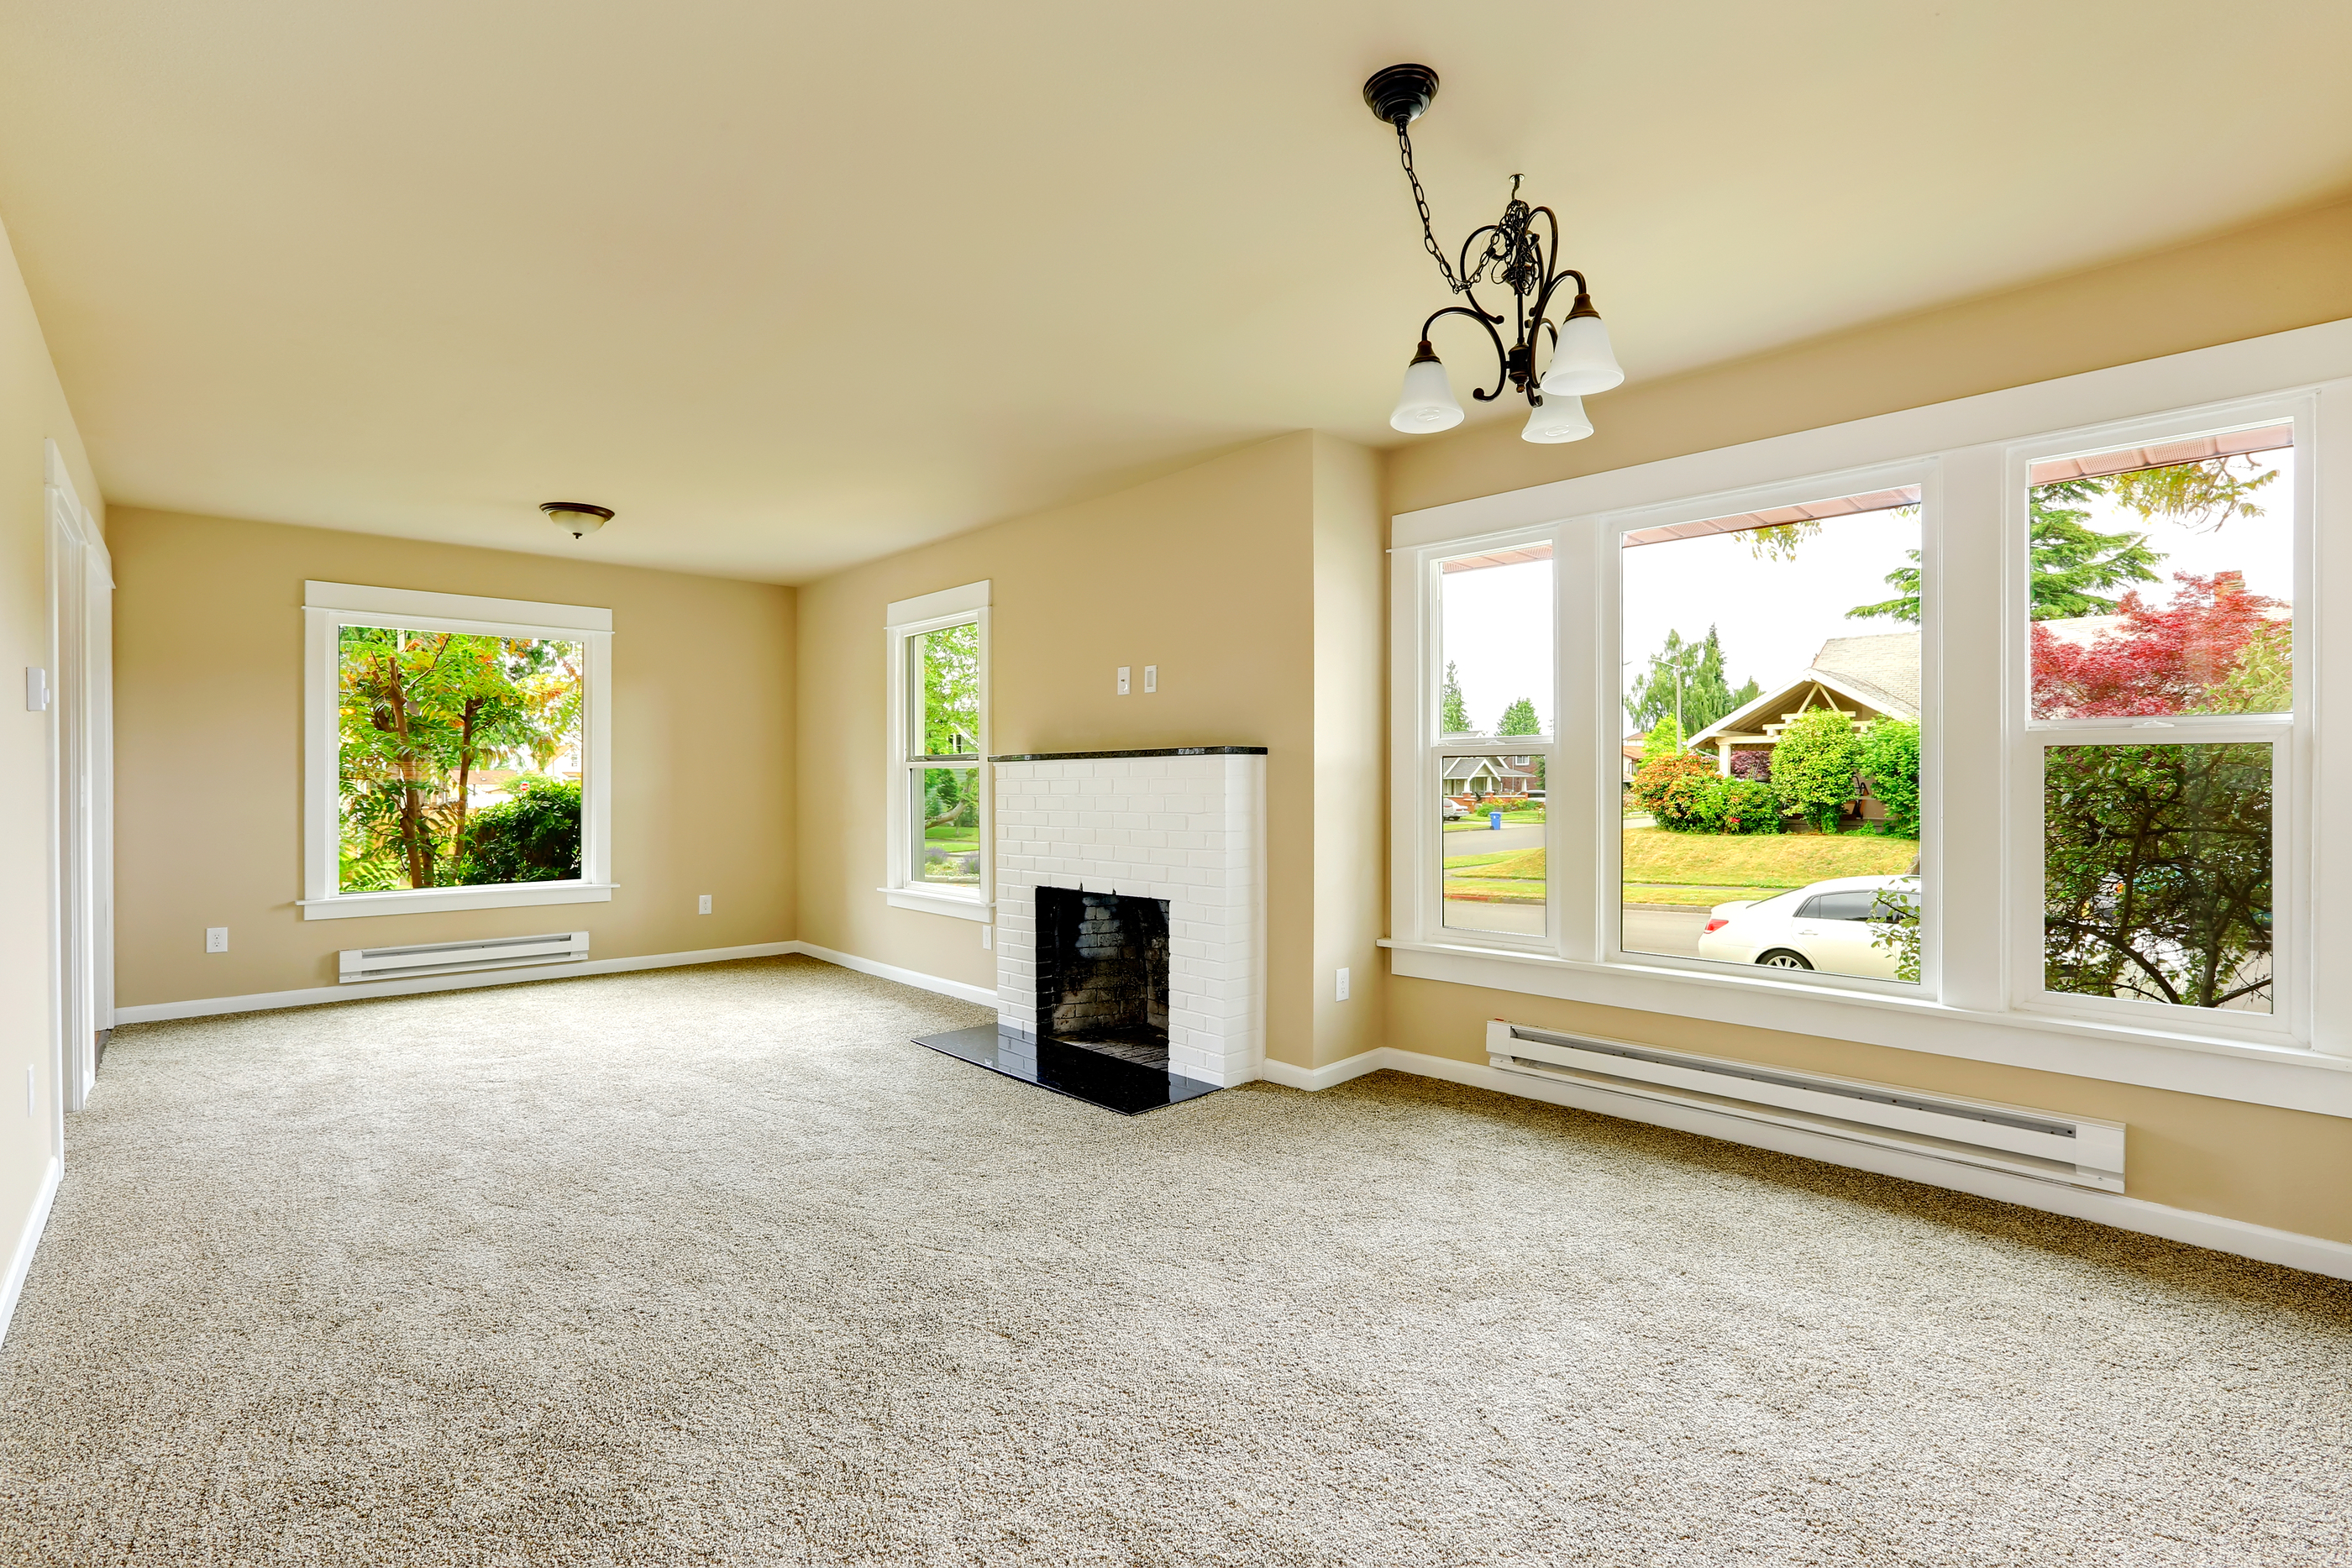 Emtpy house interior. Family room with ivory walls and light grey carpet floor. Room has white brick background fireplace